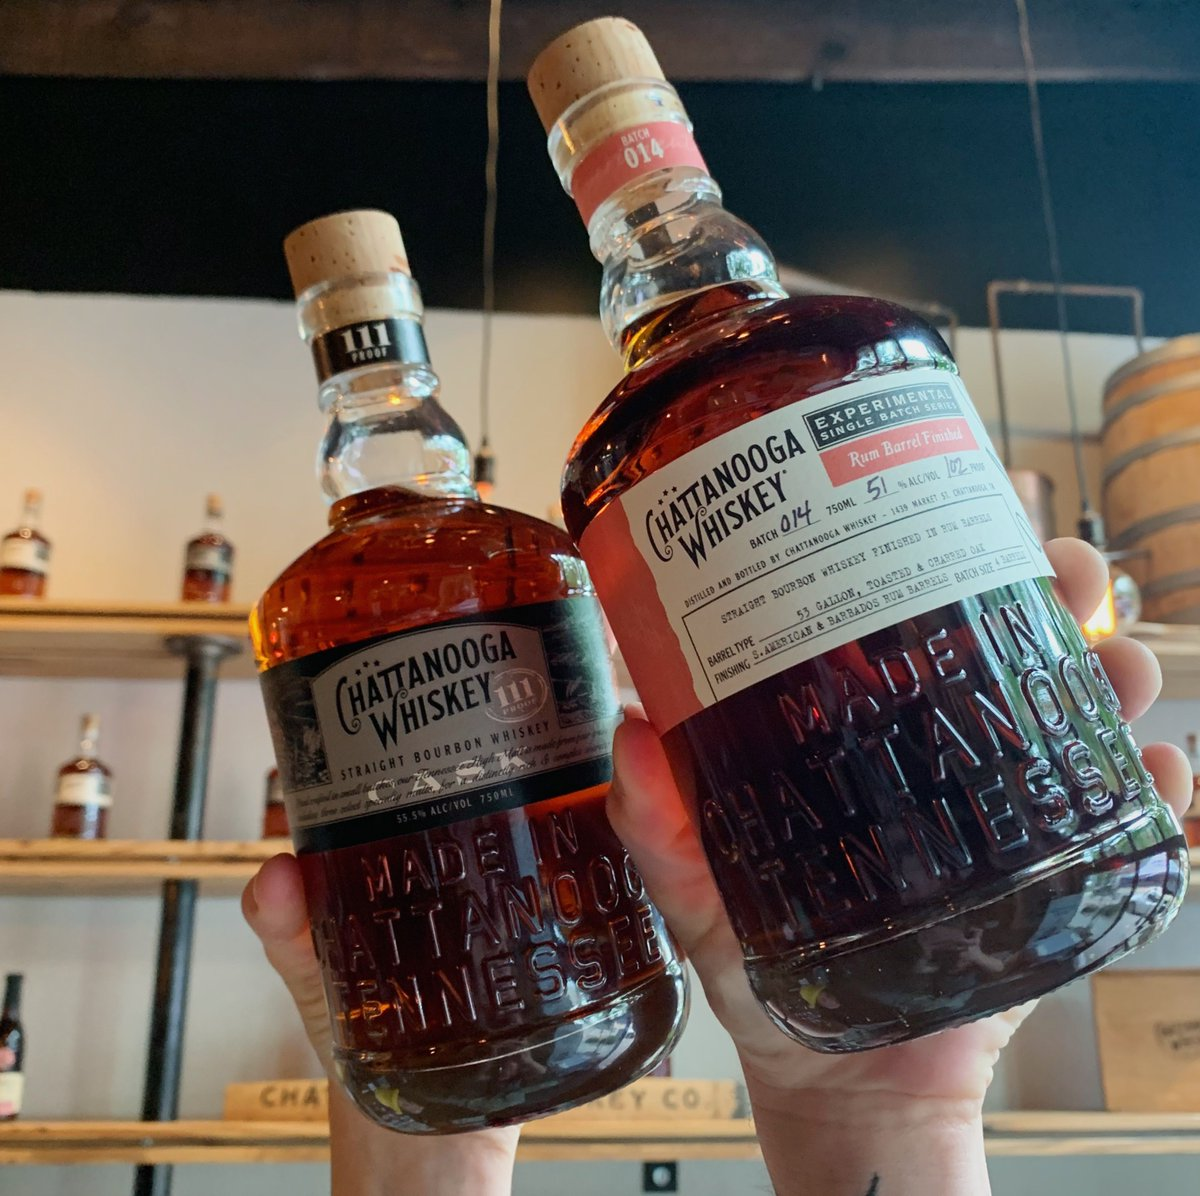 Join us for @bourboncharity's Bourbon Bingo Zoom Party this Saturday for a chance to win a bottle of Chatt Whiskey Cask 111 and Batch 014! All proceeds go to support the struggling hospitality industry, more information and sign up can be found here: https://bourboncharity.org/pages/virtual-bourbon-bingo…pic.twitter.com/NZXnNM3PIx